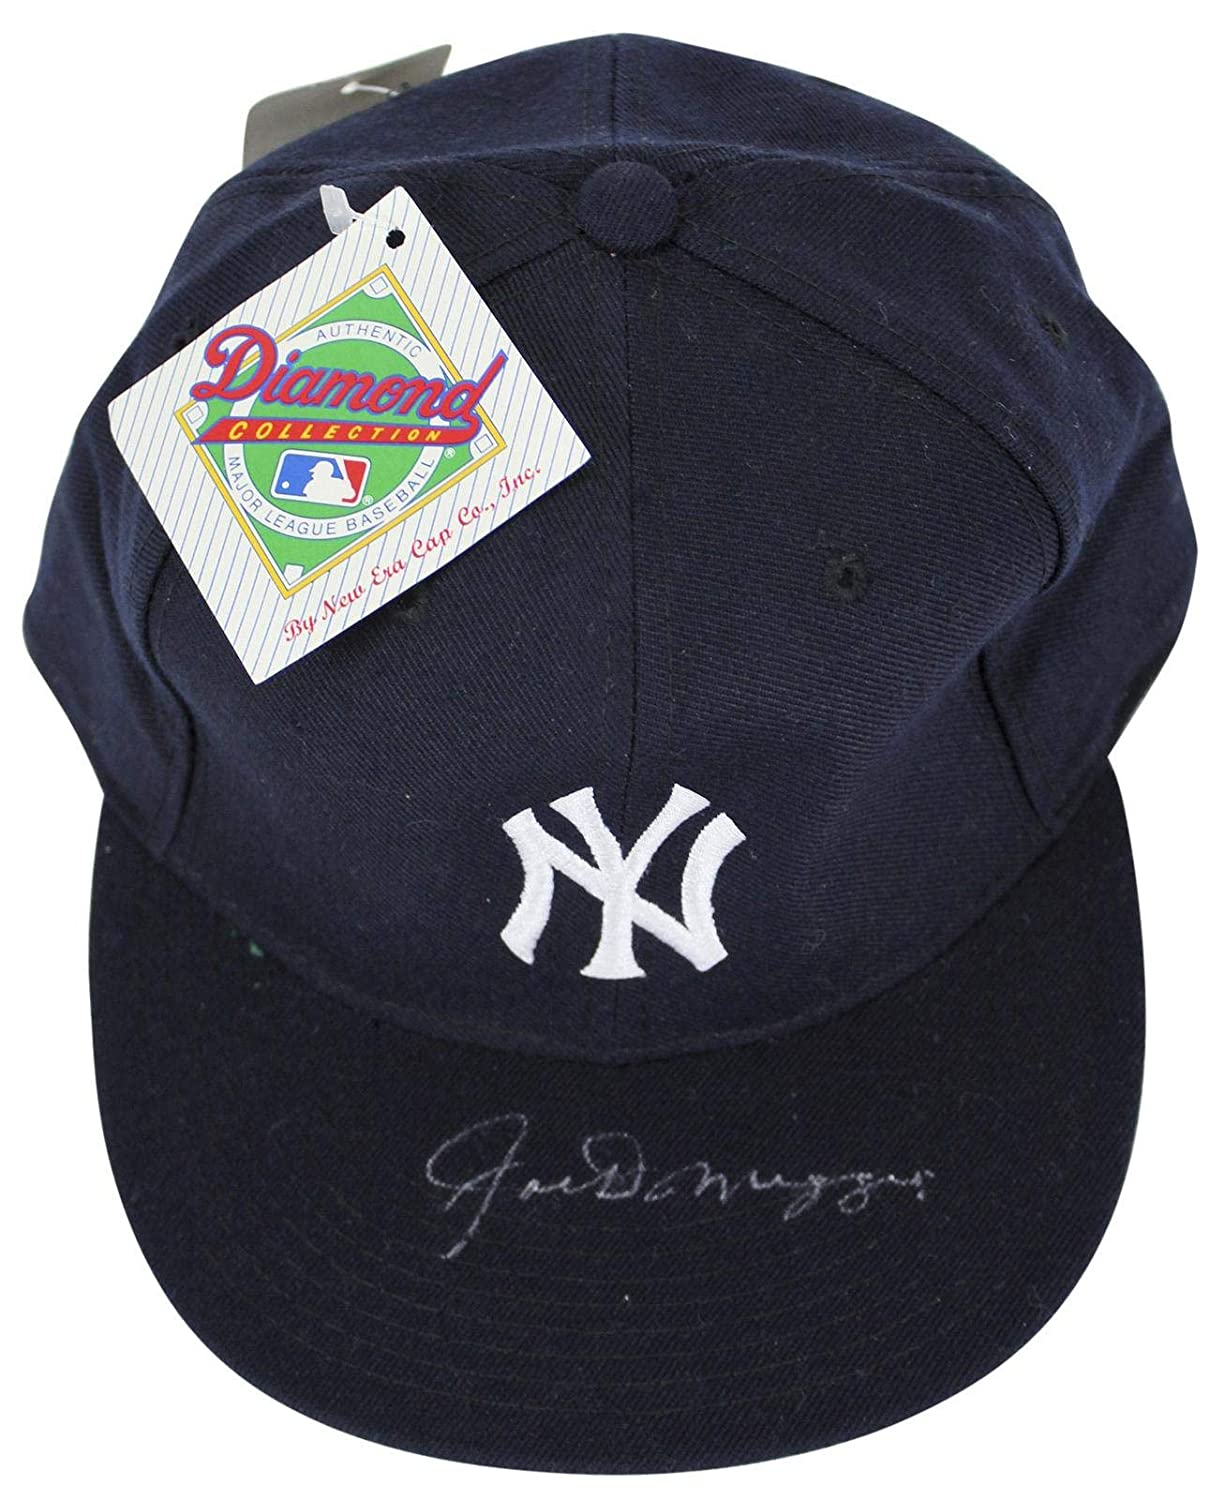 99acfa34f6a Yankees Joe DiMaggio Signed New Era Size 7.5 Hat  Z37700 - JSA Certified -  Autographed Hats at Amazon s Sports Collectibles Store